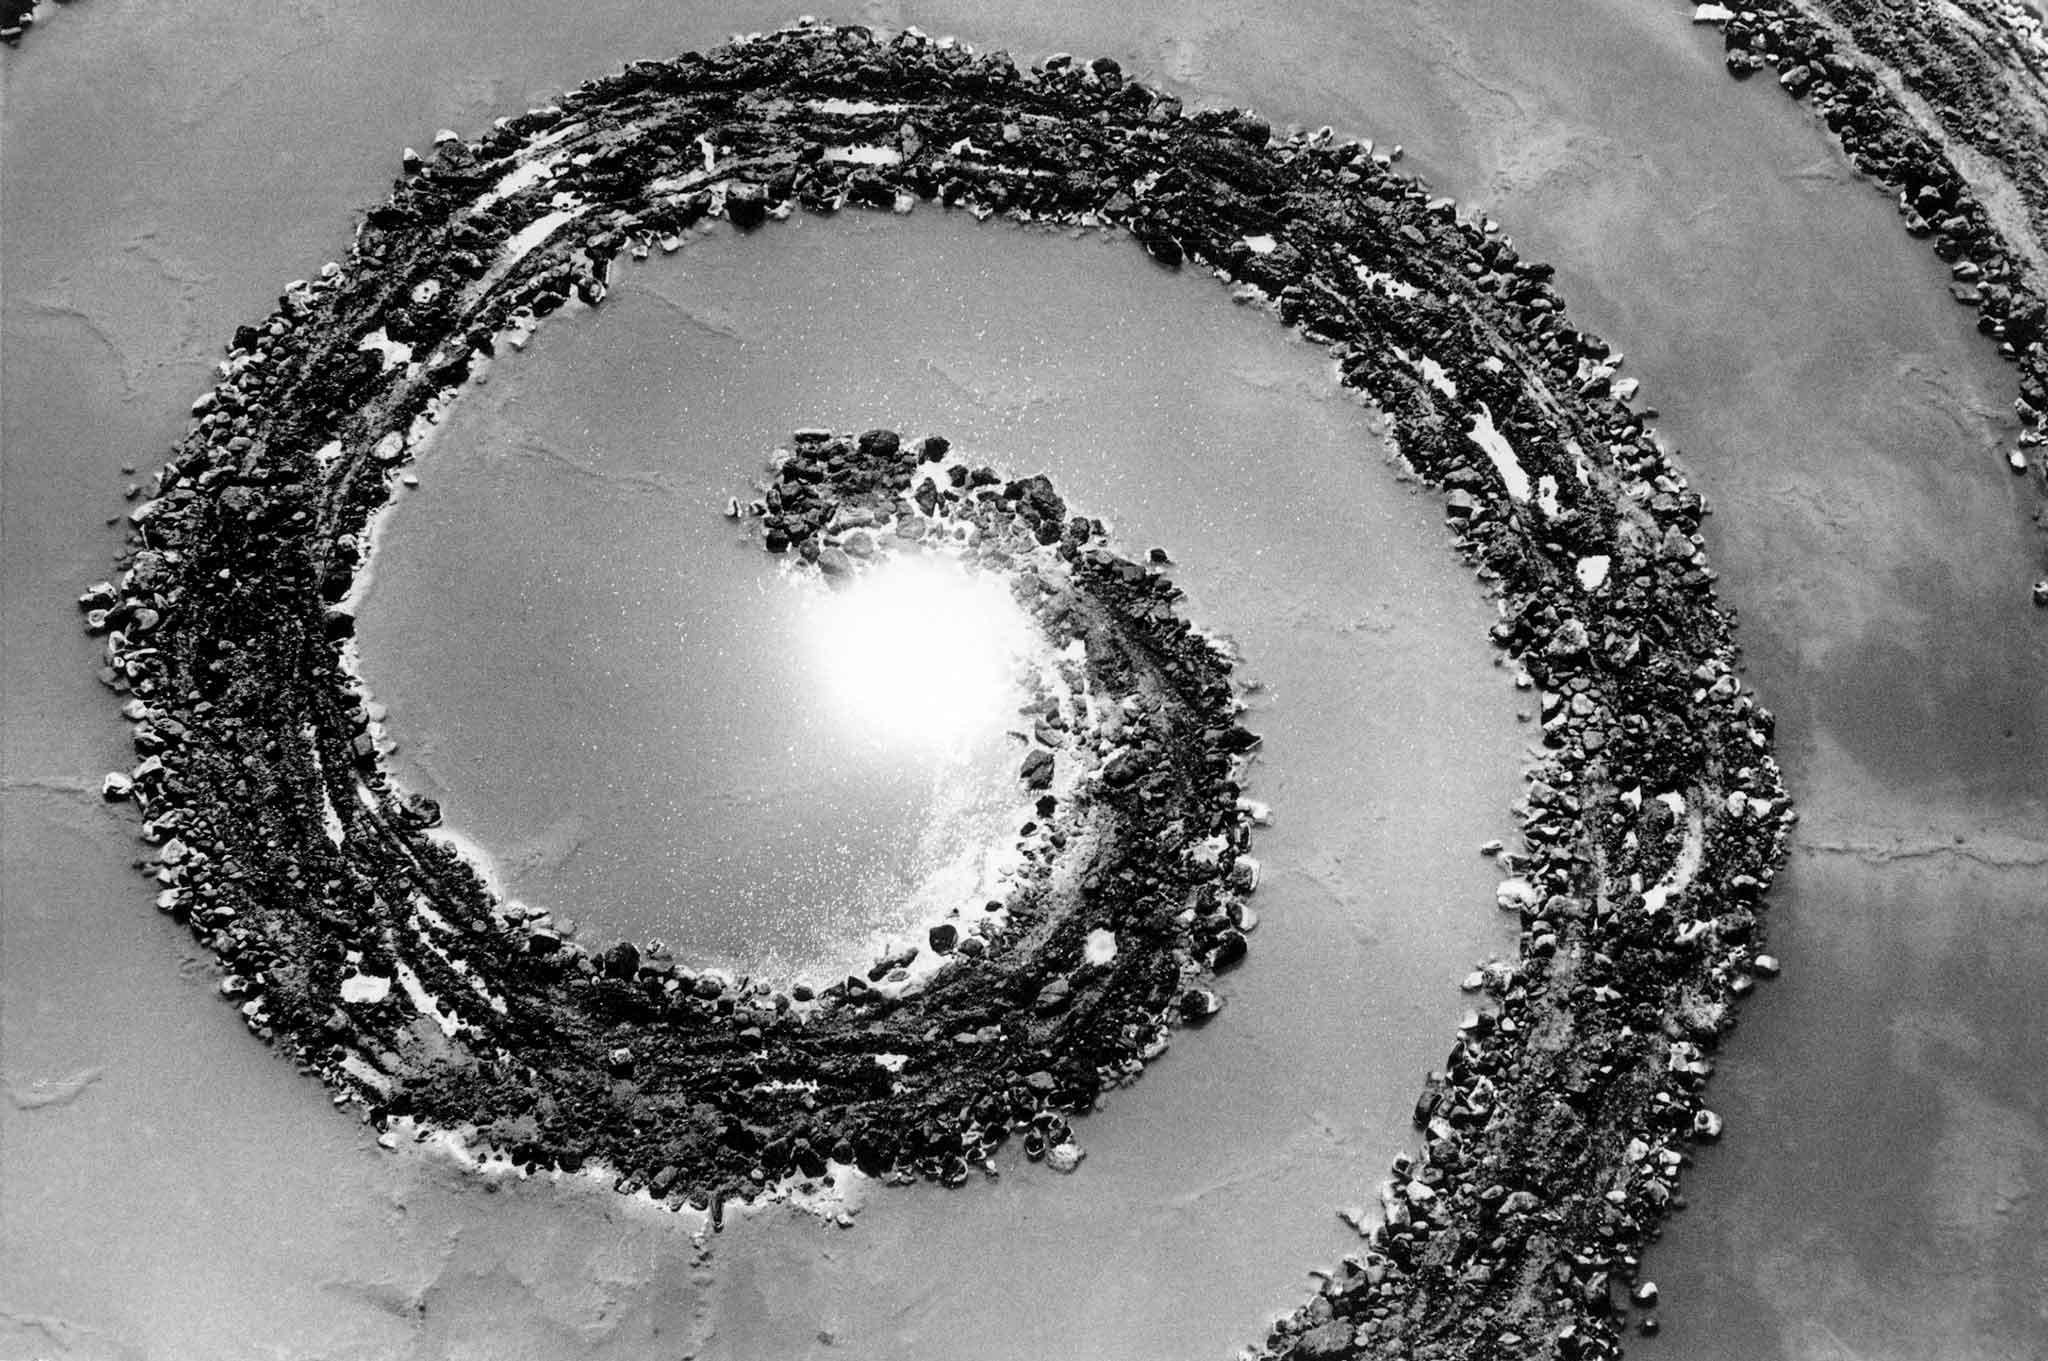 Robert Smithson's Spiral Jetty photographed from the air.